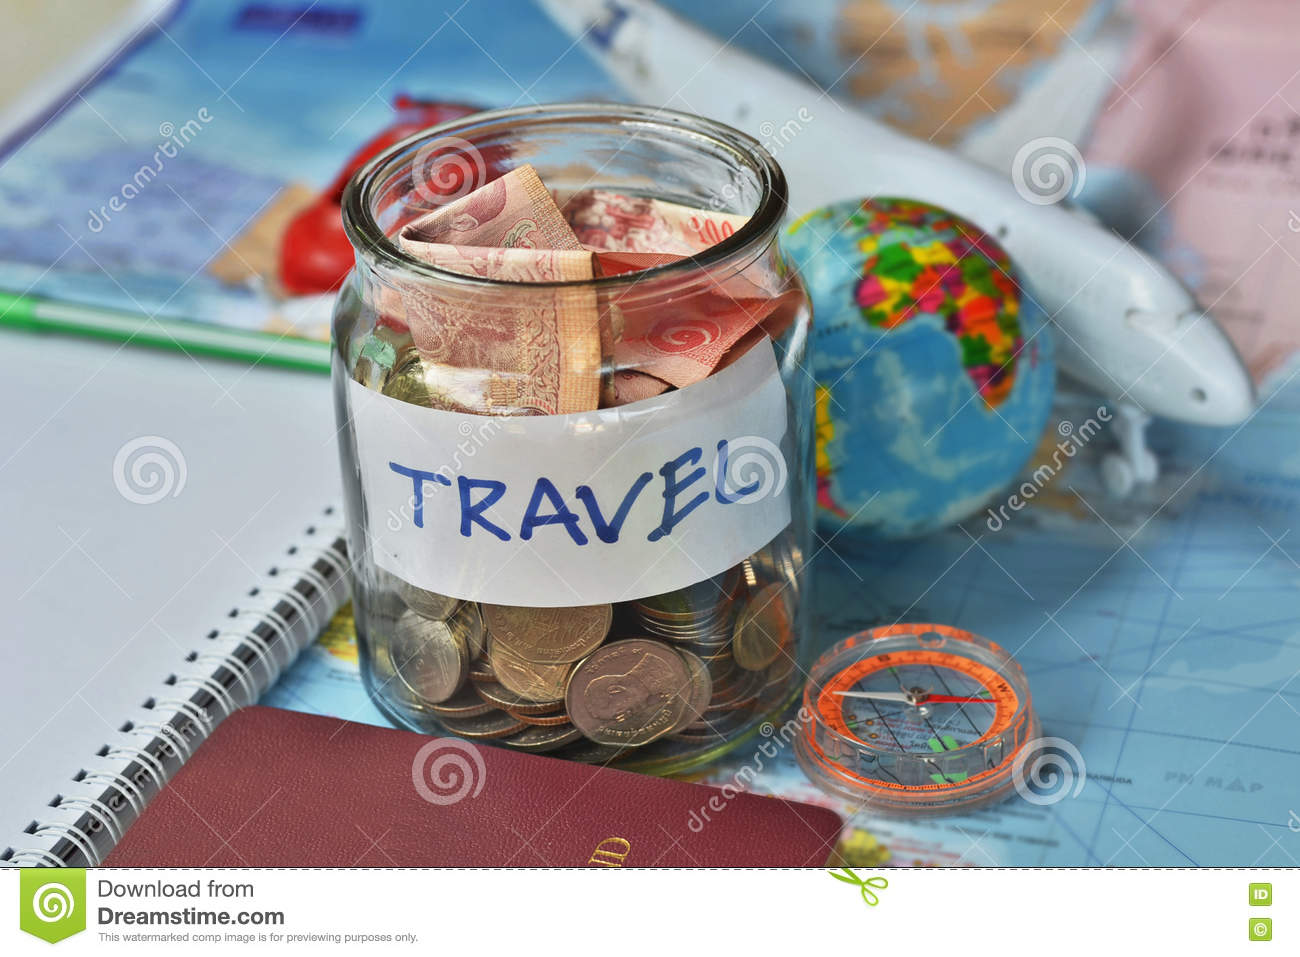 Travel budget concept travel money savings in a glass jar with travel budget concept travel money savings in a glass jar with compass passport and aircraft toy gumiabroncs Gallery